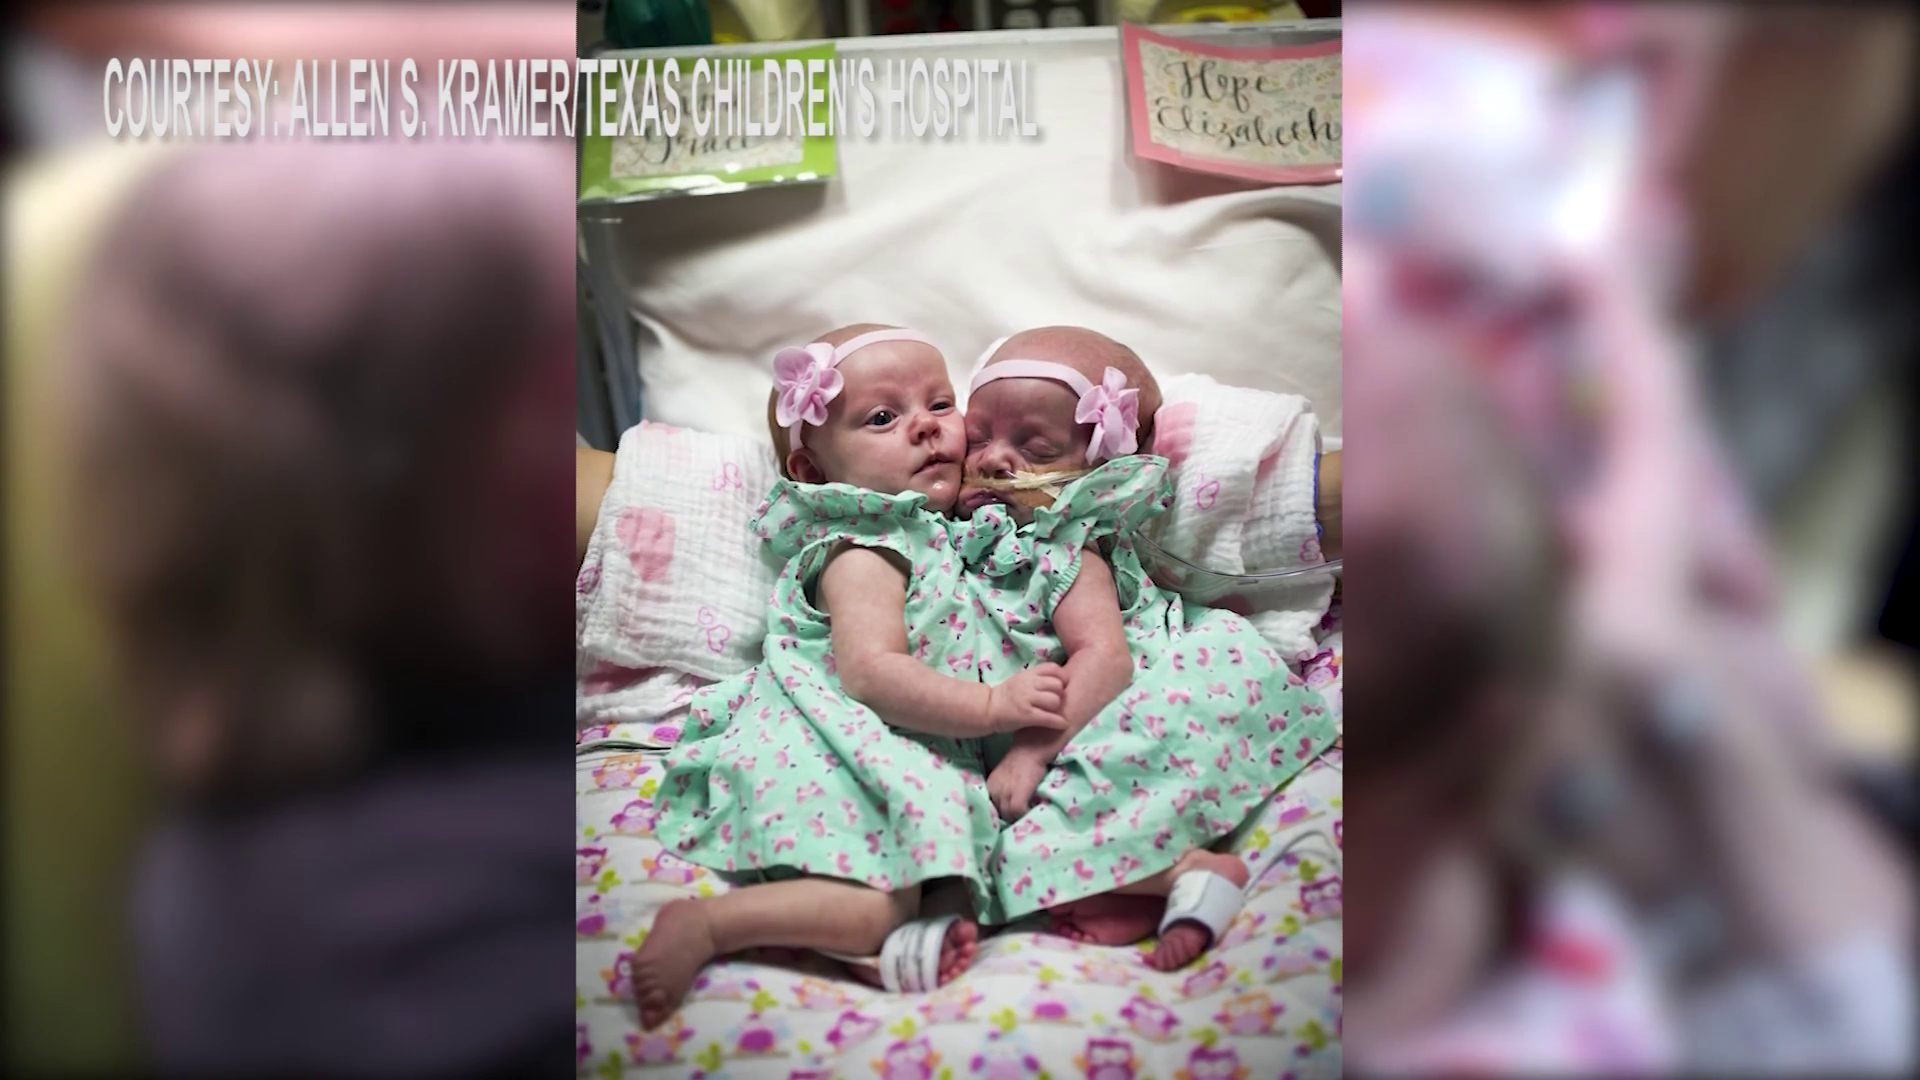 Doctors in Houston have successfully separated toddler girls who were born in 2016 conjoined at the chest and abdomen. (Image/video courtesy: Allen S. Kramer / Texas Children's Hospital / KHOU / Newspath)